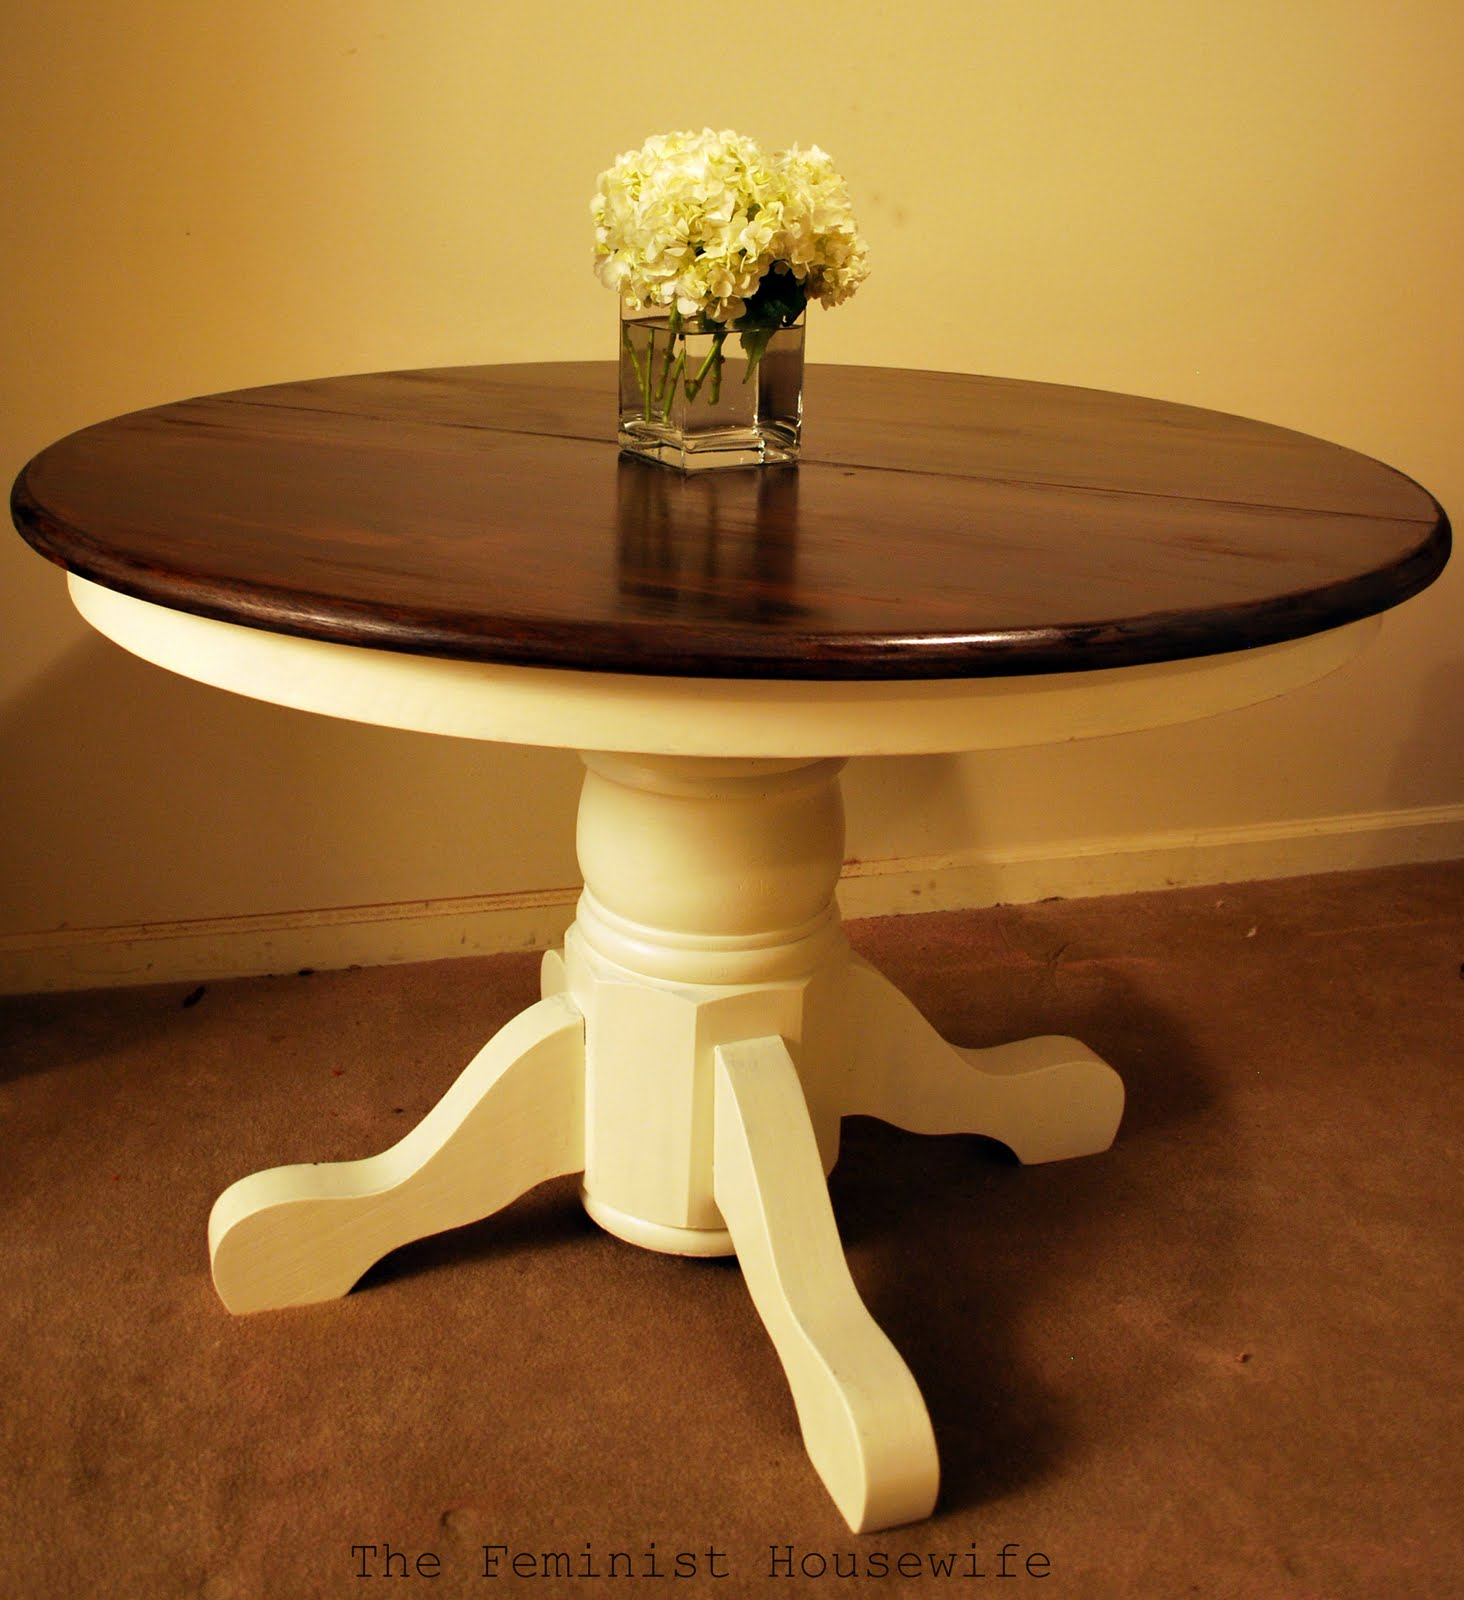 The Feminist Housewife: Pedestal Table FAQ